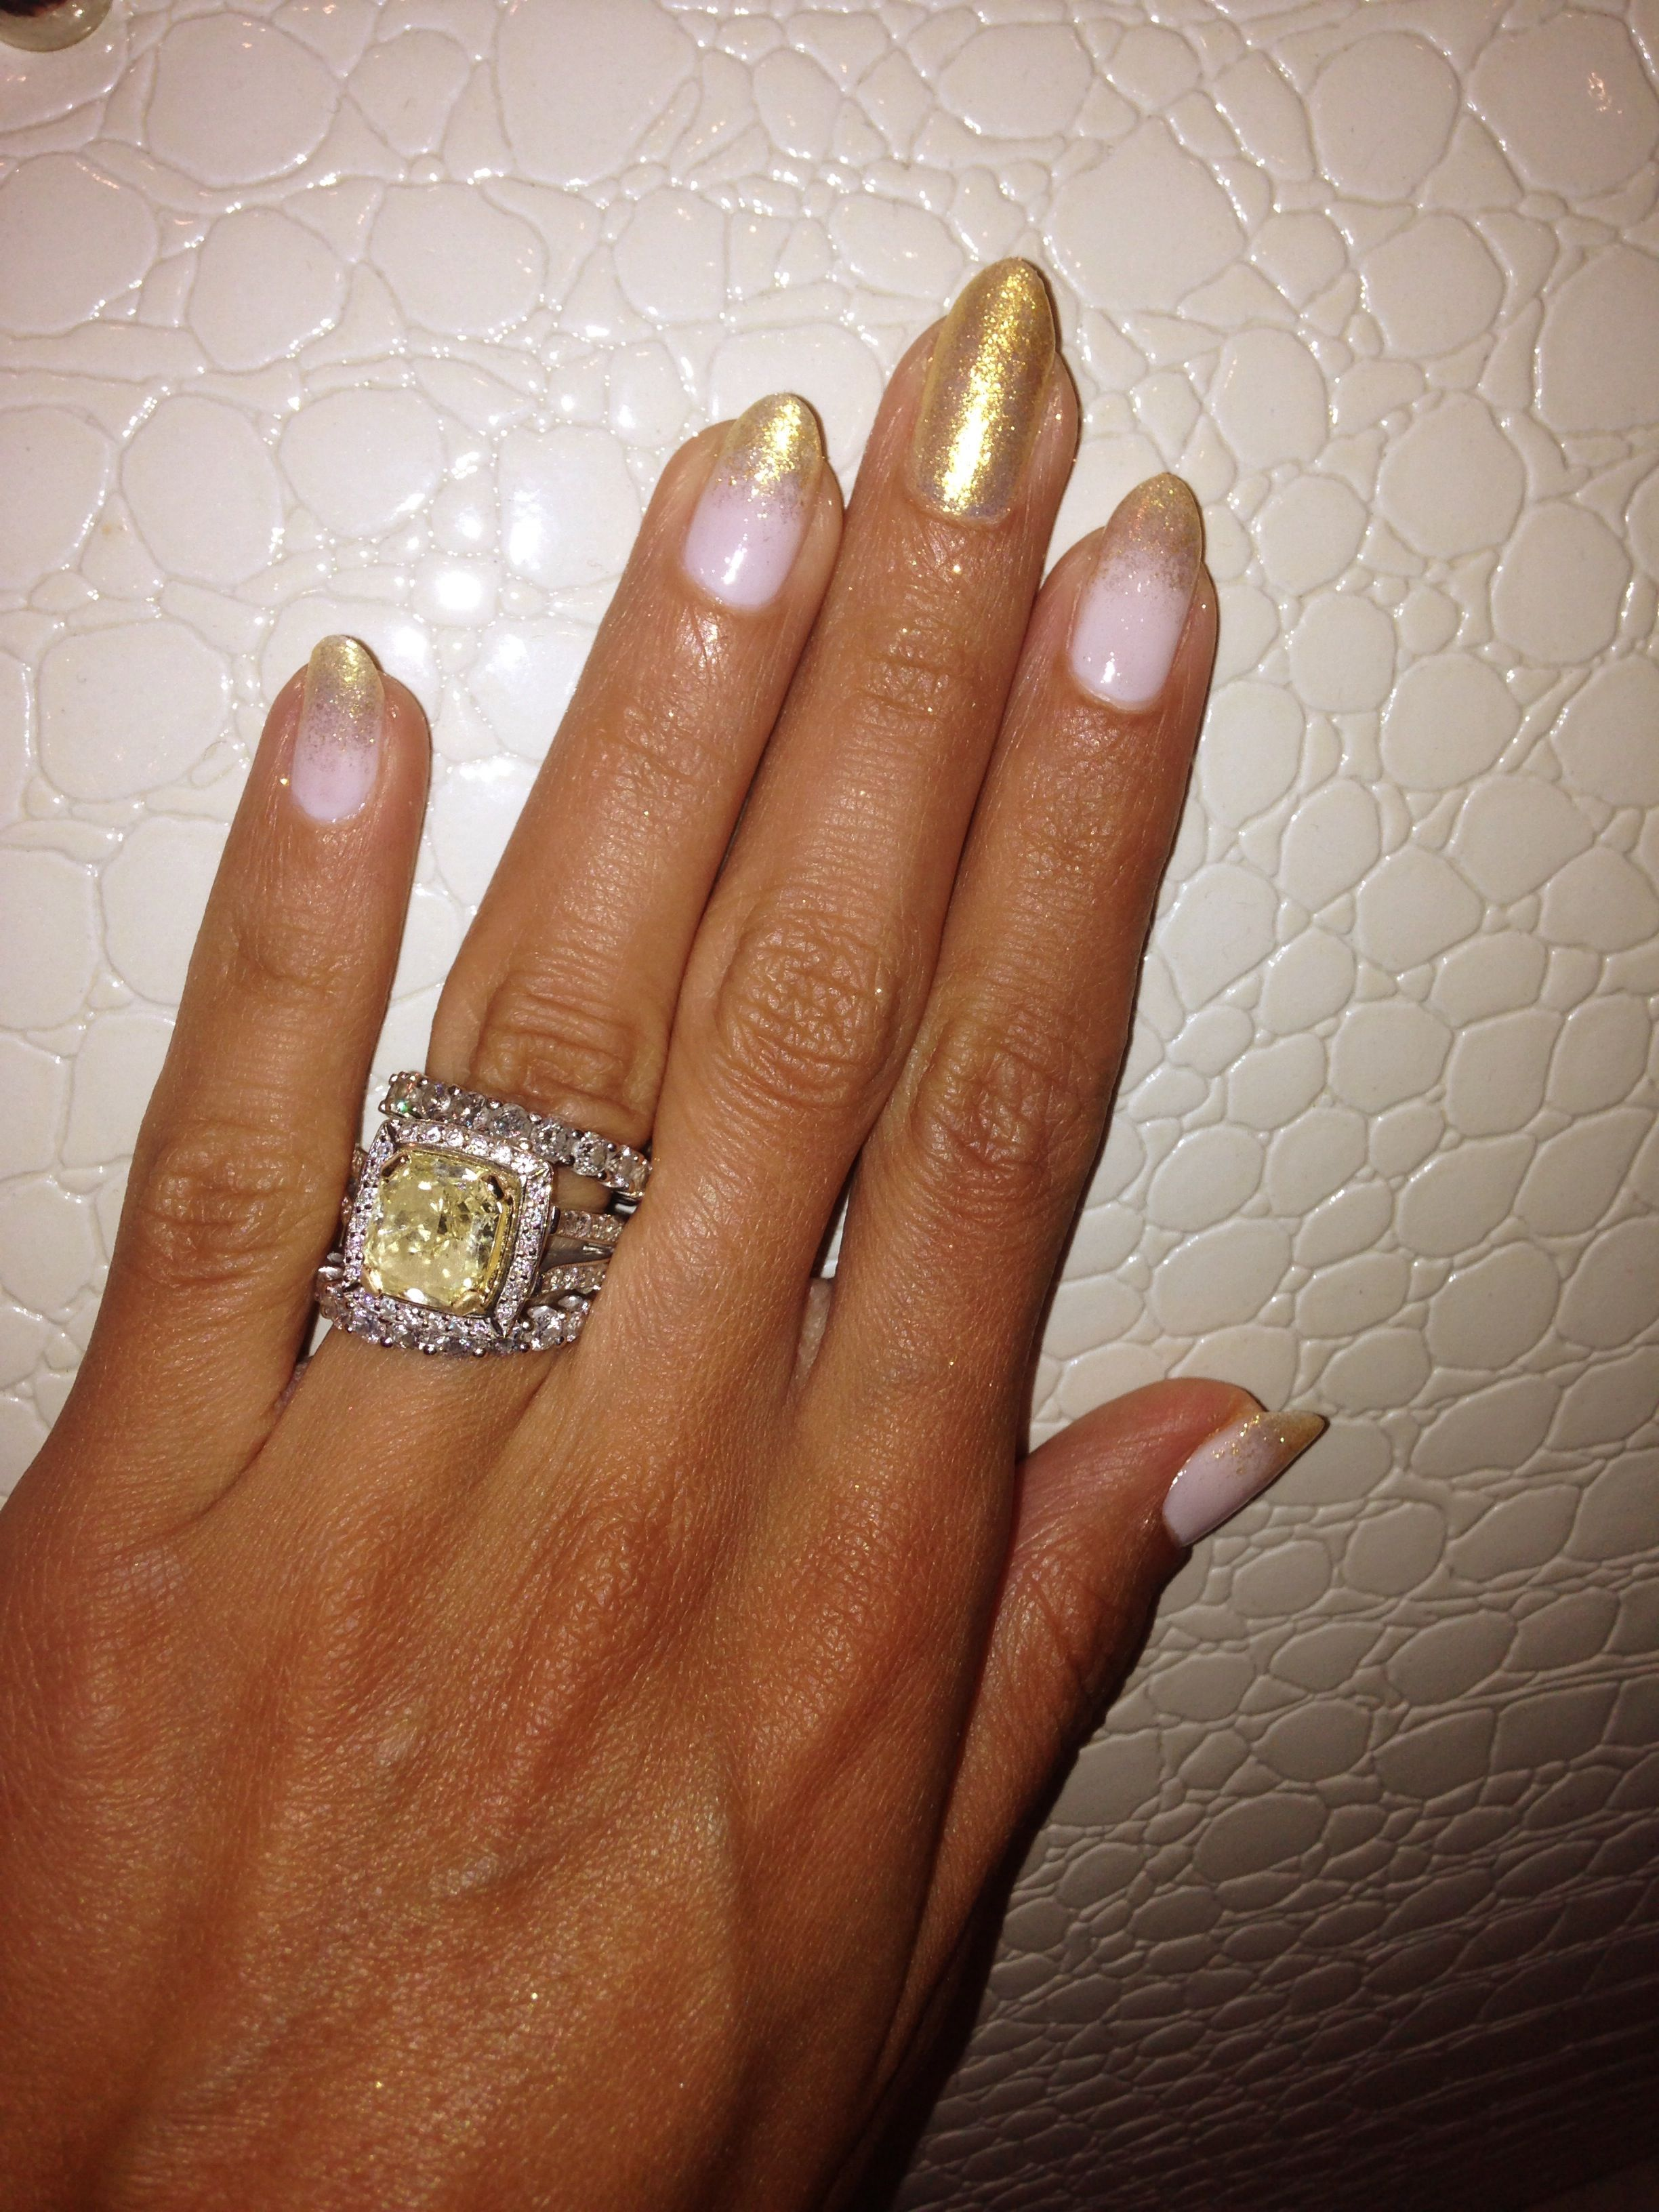 all are gold my acrylic rings manicures finger natural of pin pics nails mine wedding